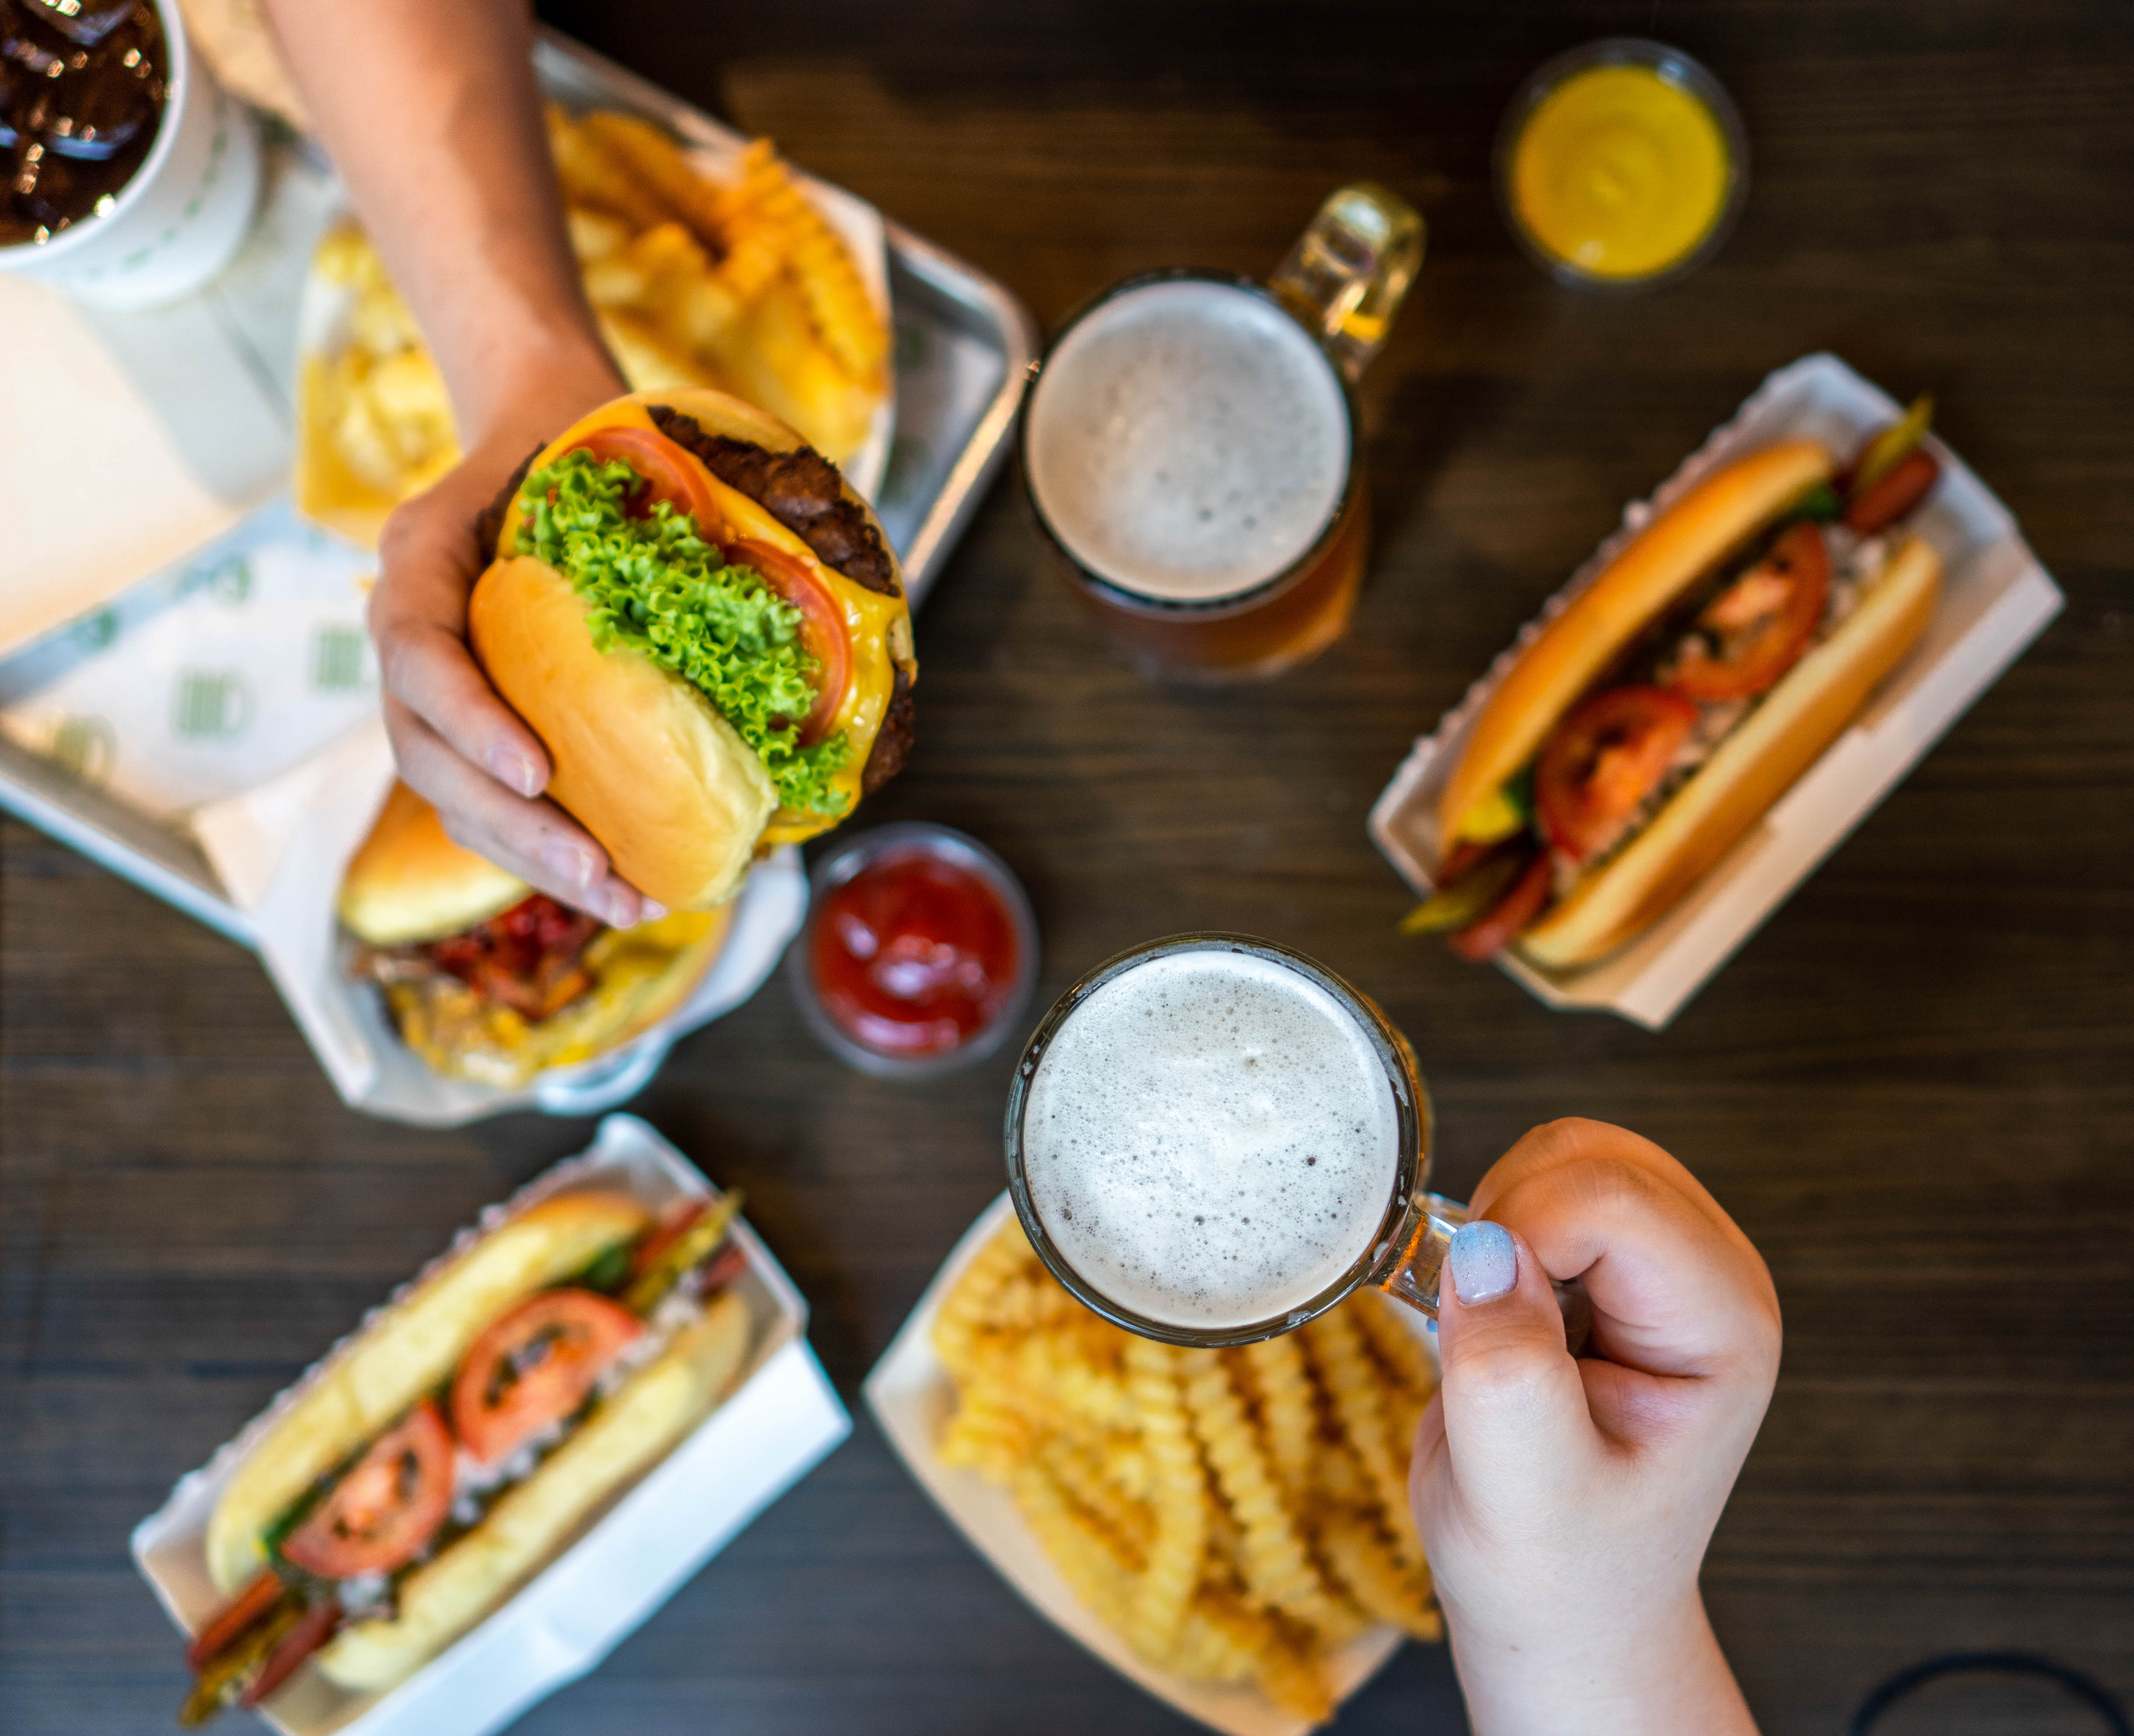 Shacktoberfest! Raise a stein of craft beer and revel in live music at Shake Shack Singapore - Alvinology